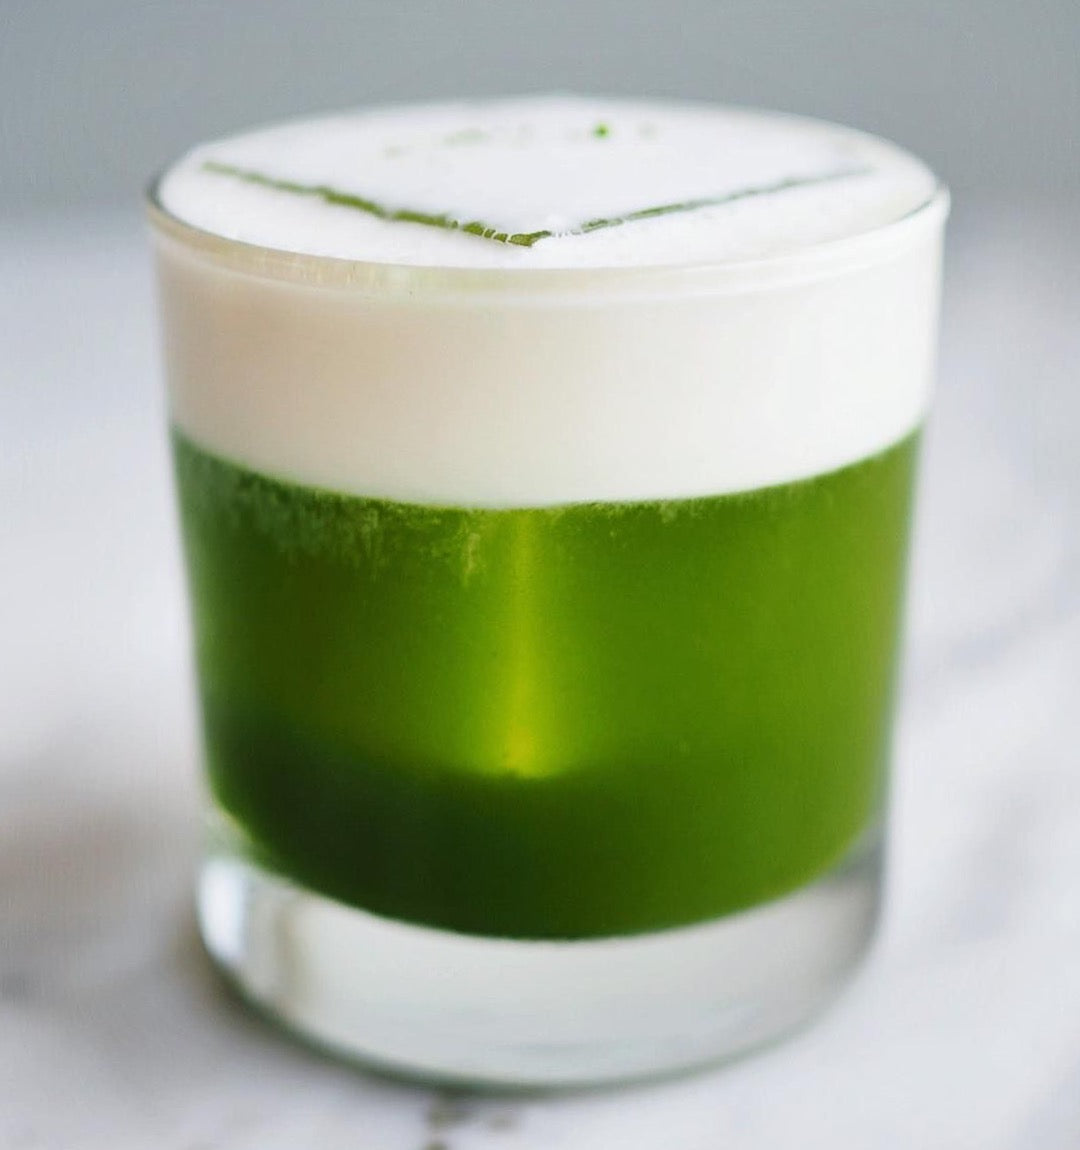 The Diving Bell  - A Mizuba Matcha Gin Cocktail by Tusk